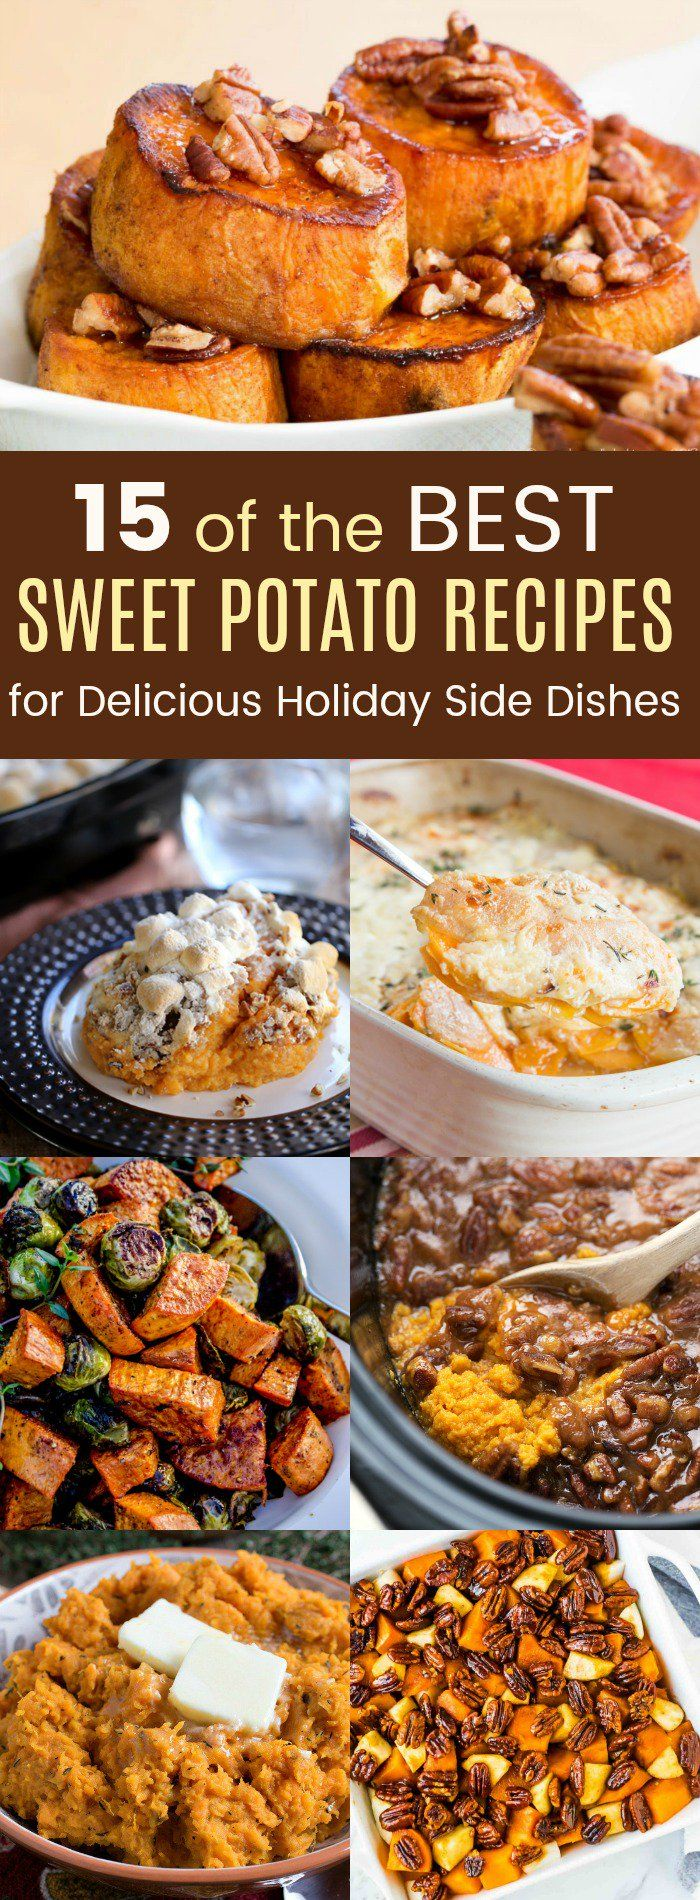 15 of the Best Sweet Potato Recipes for Delicious Holiday Side Dishes